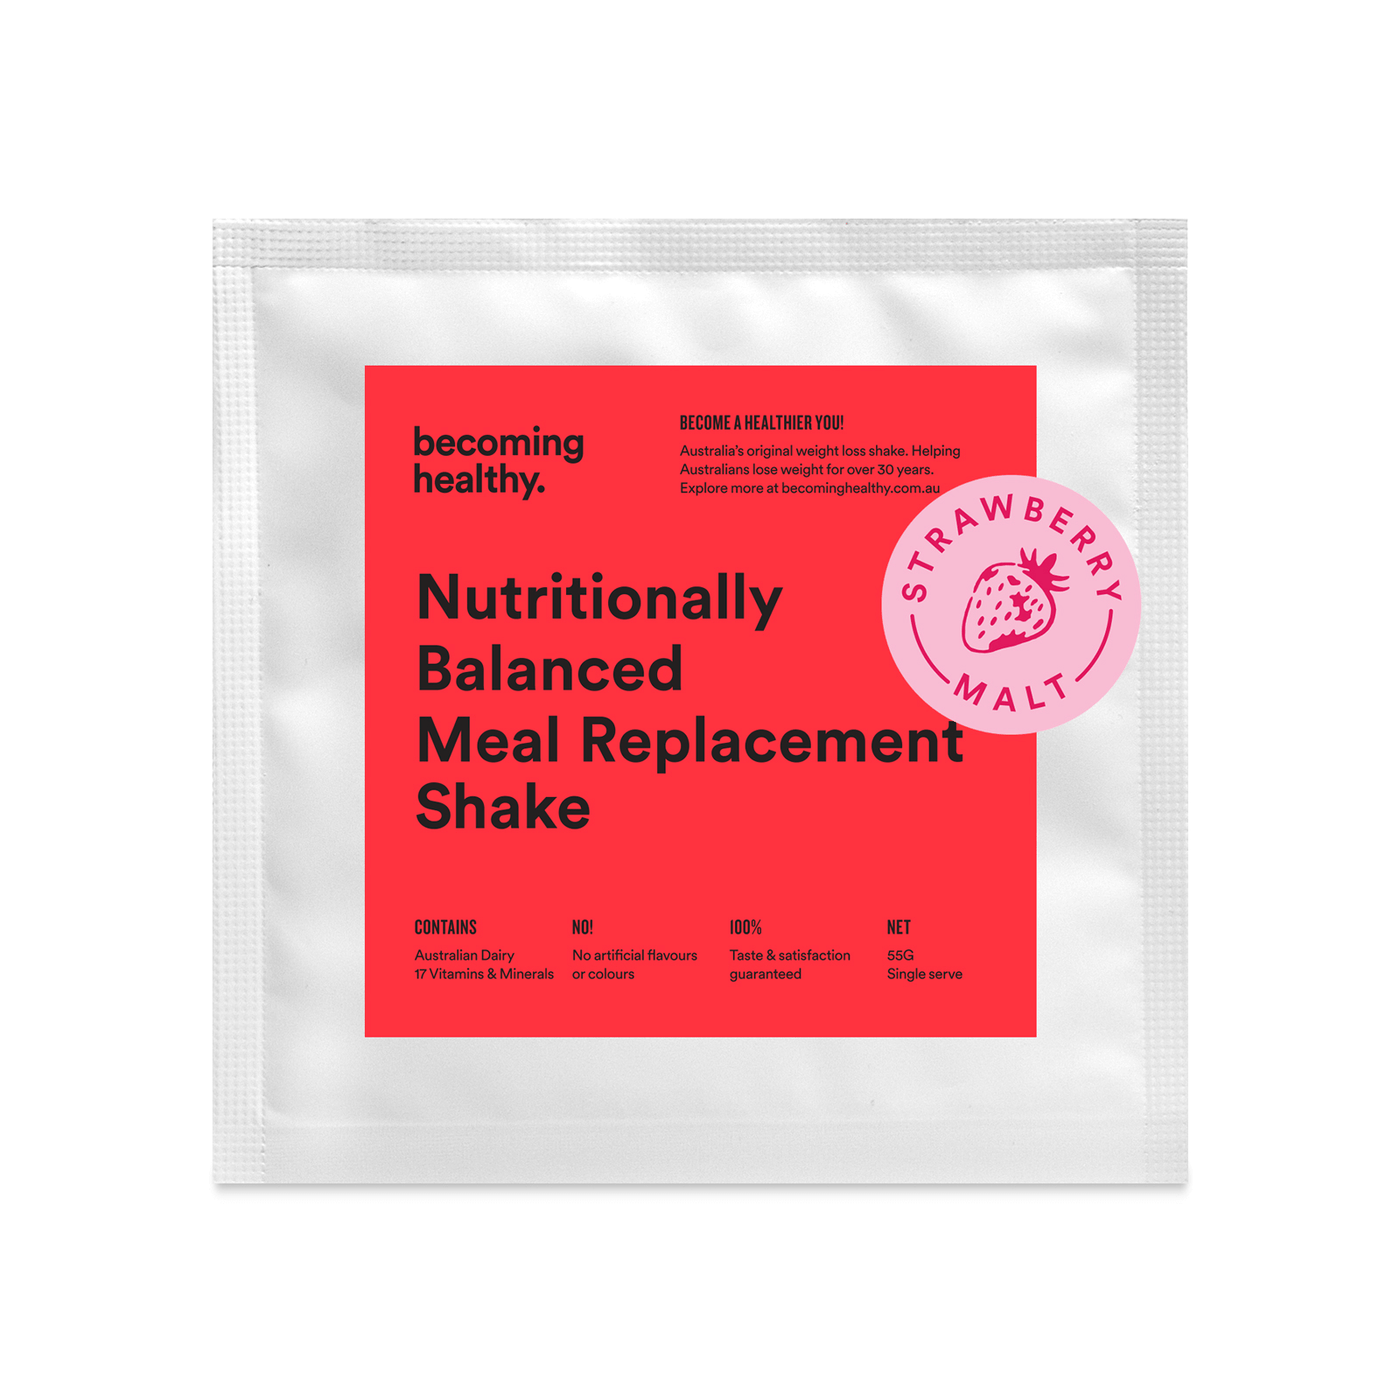 Strawberry Malt - Nutritionally Balanced Meal Replacement Shake - Becoming Healthy